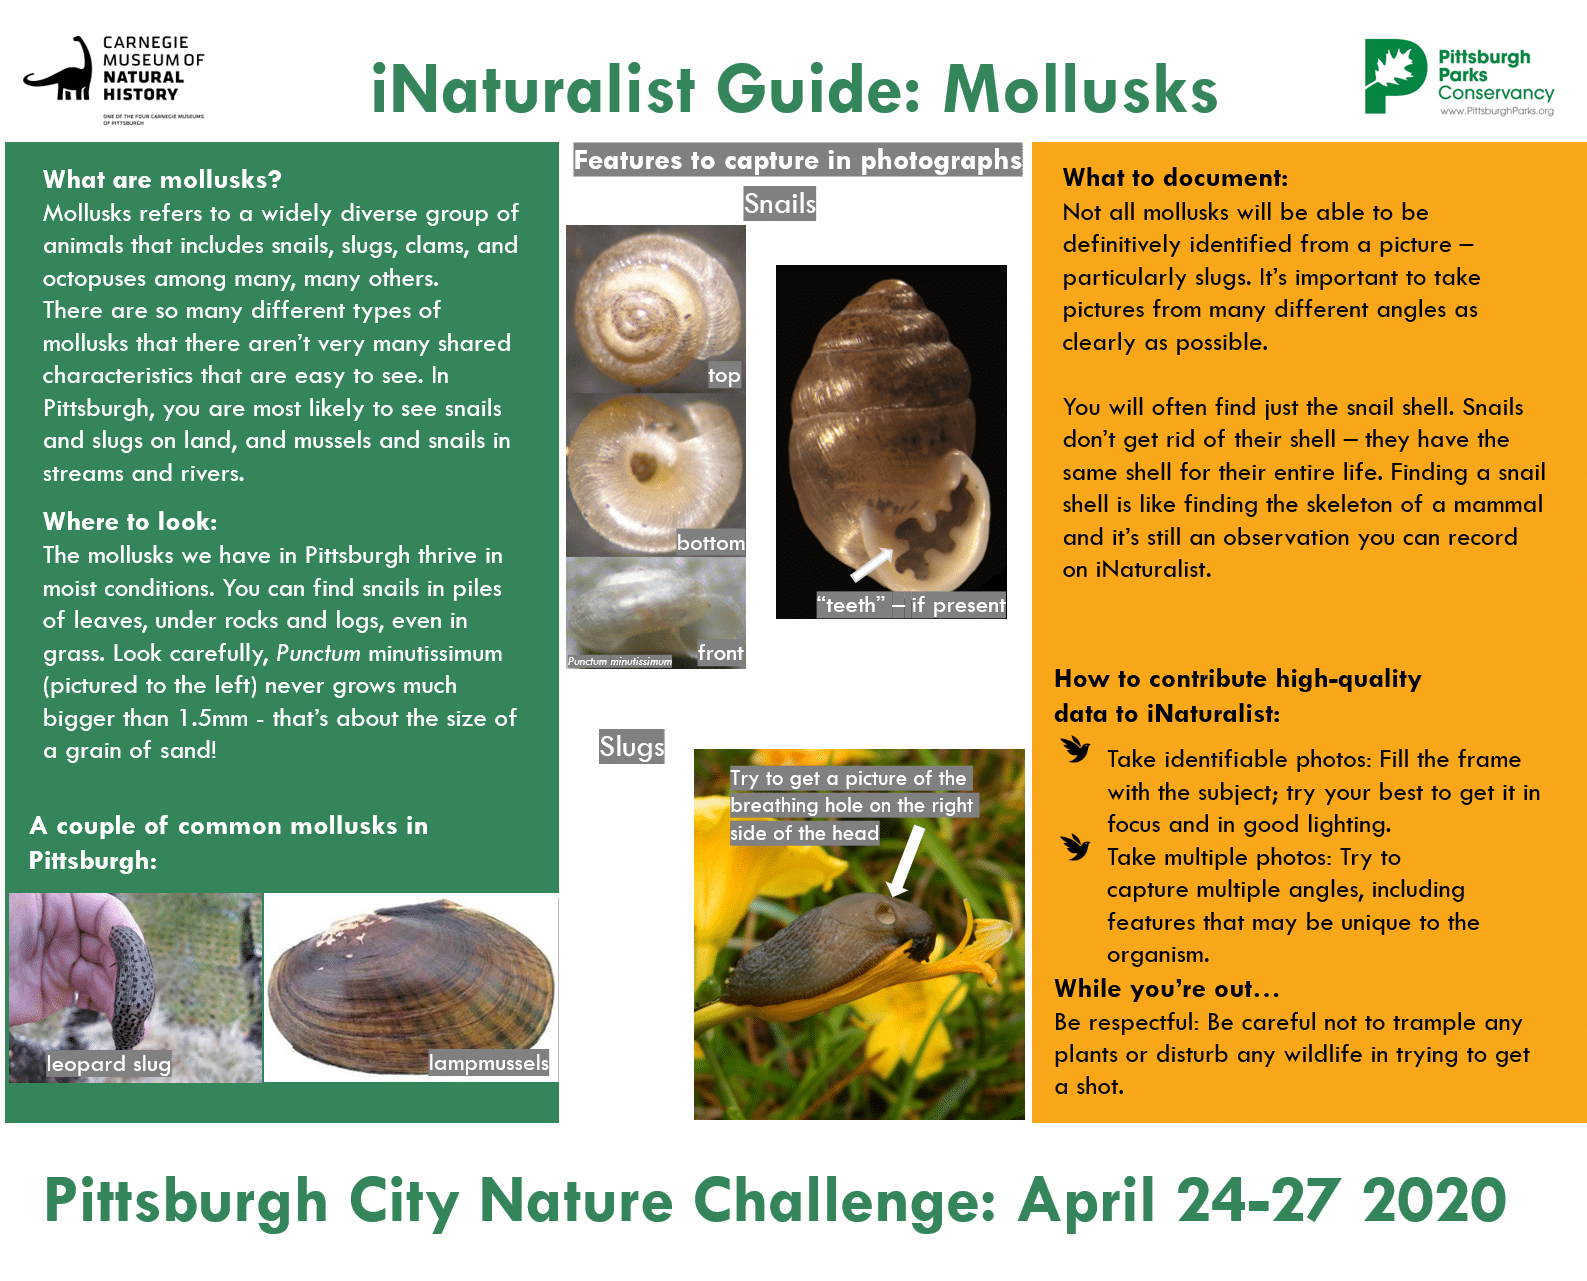 A guide to Mollusks